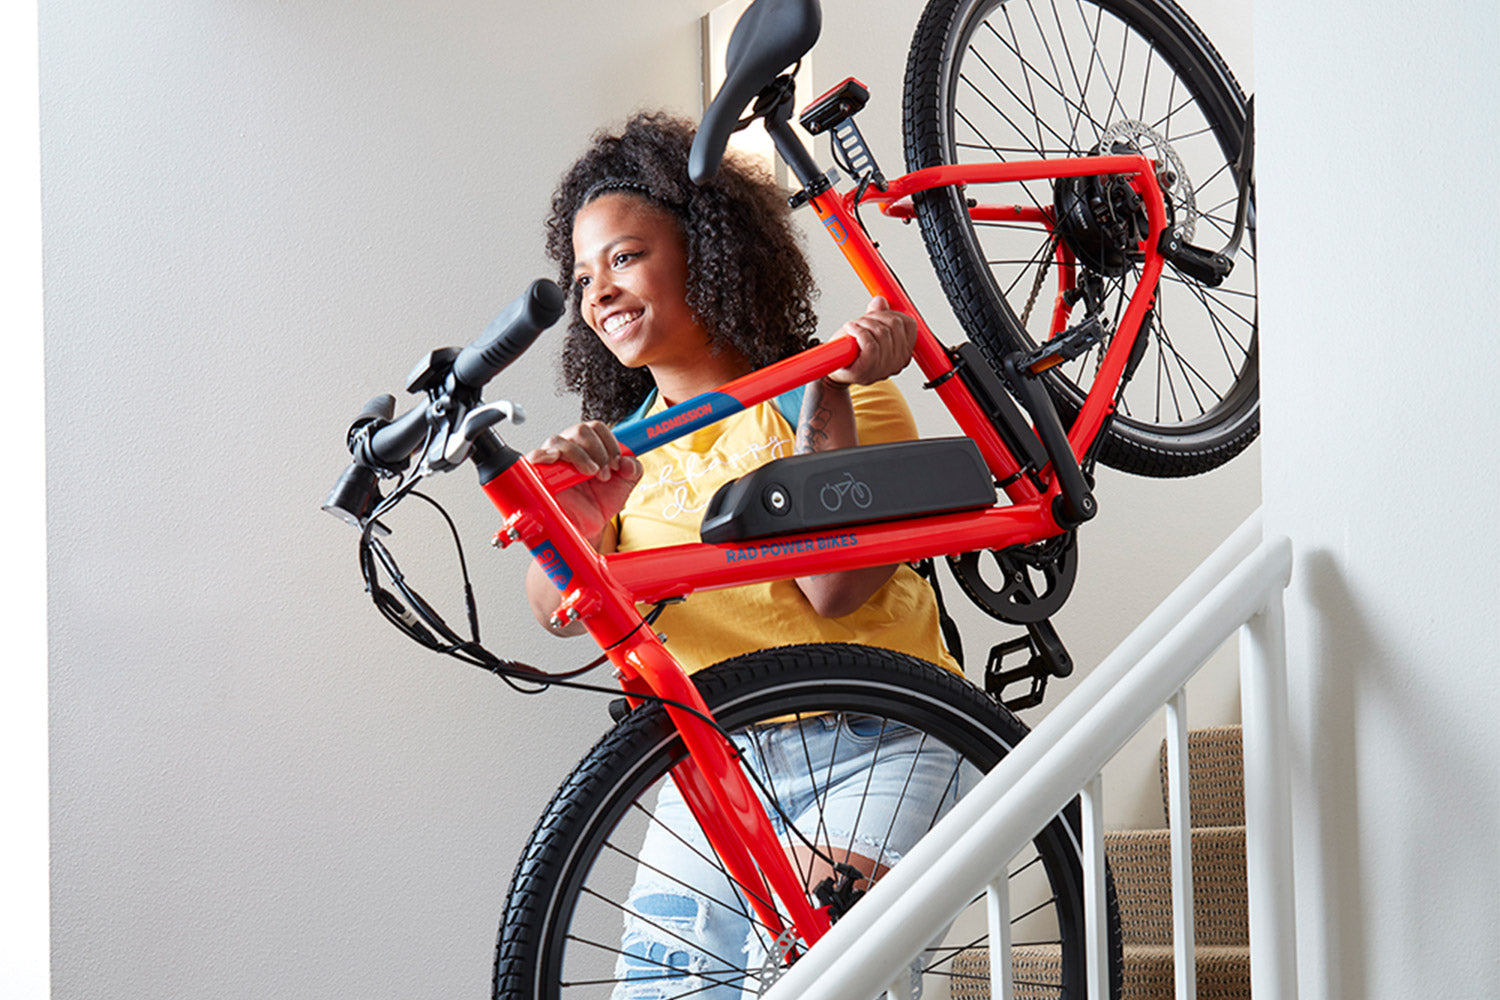 Person carrying red RadMisson e-bike down stairs